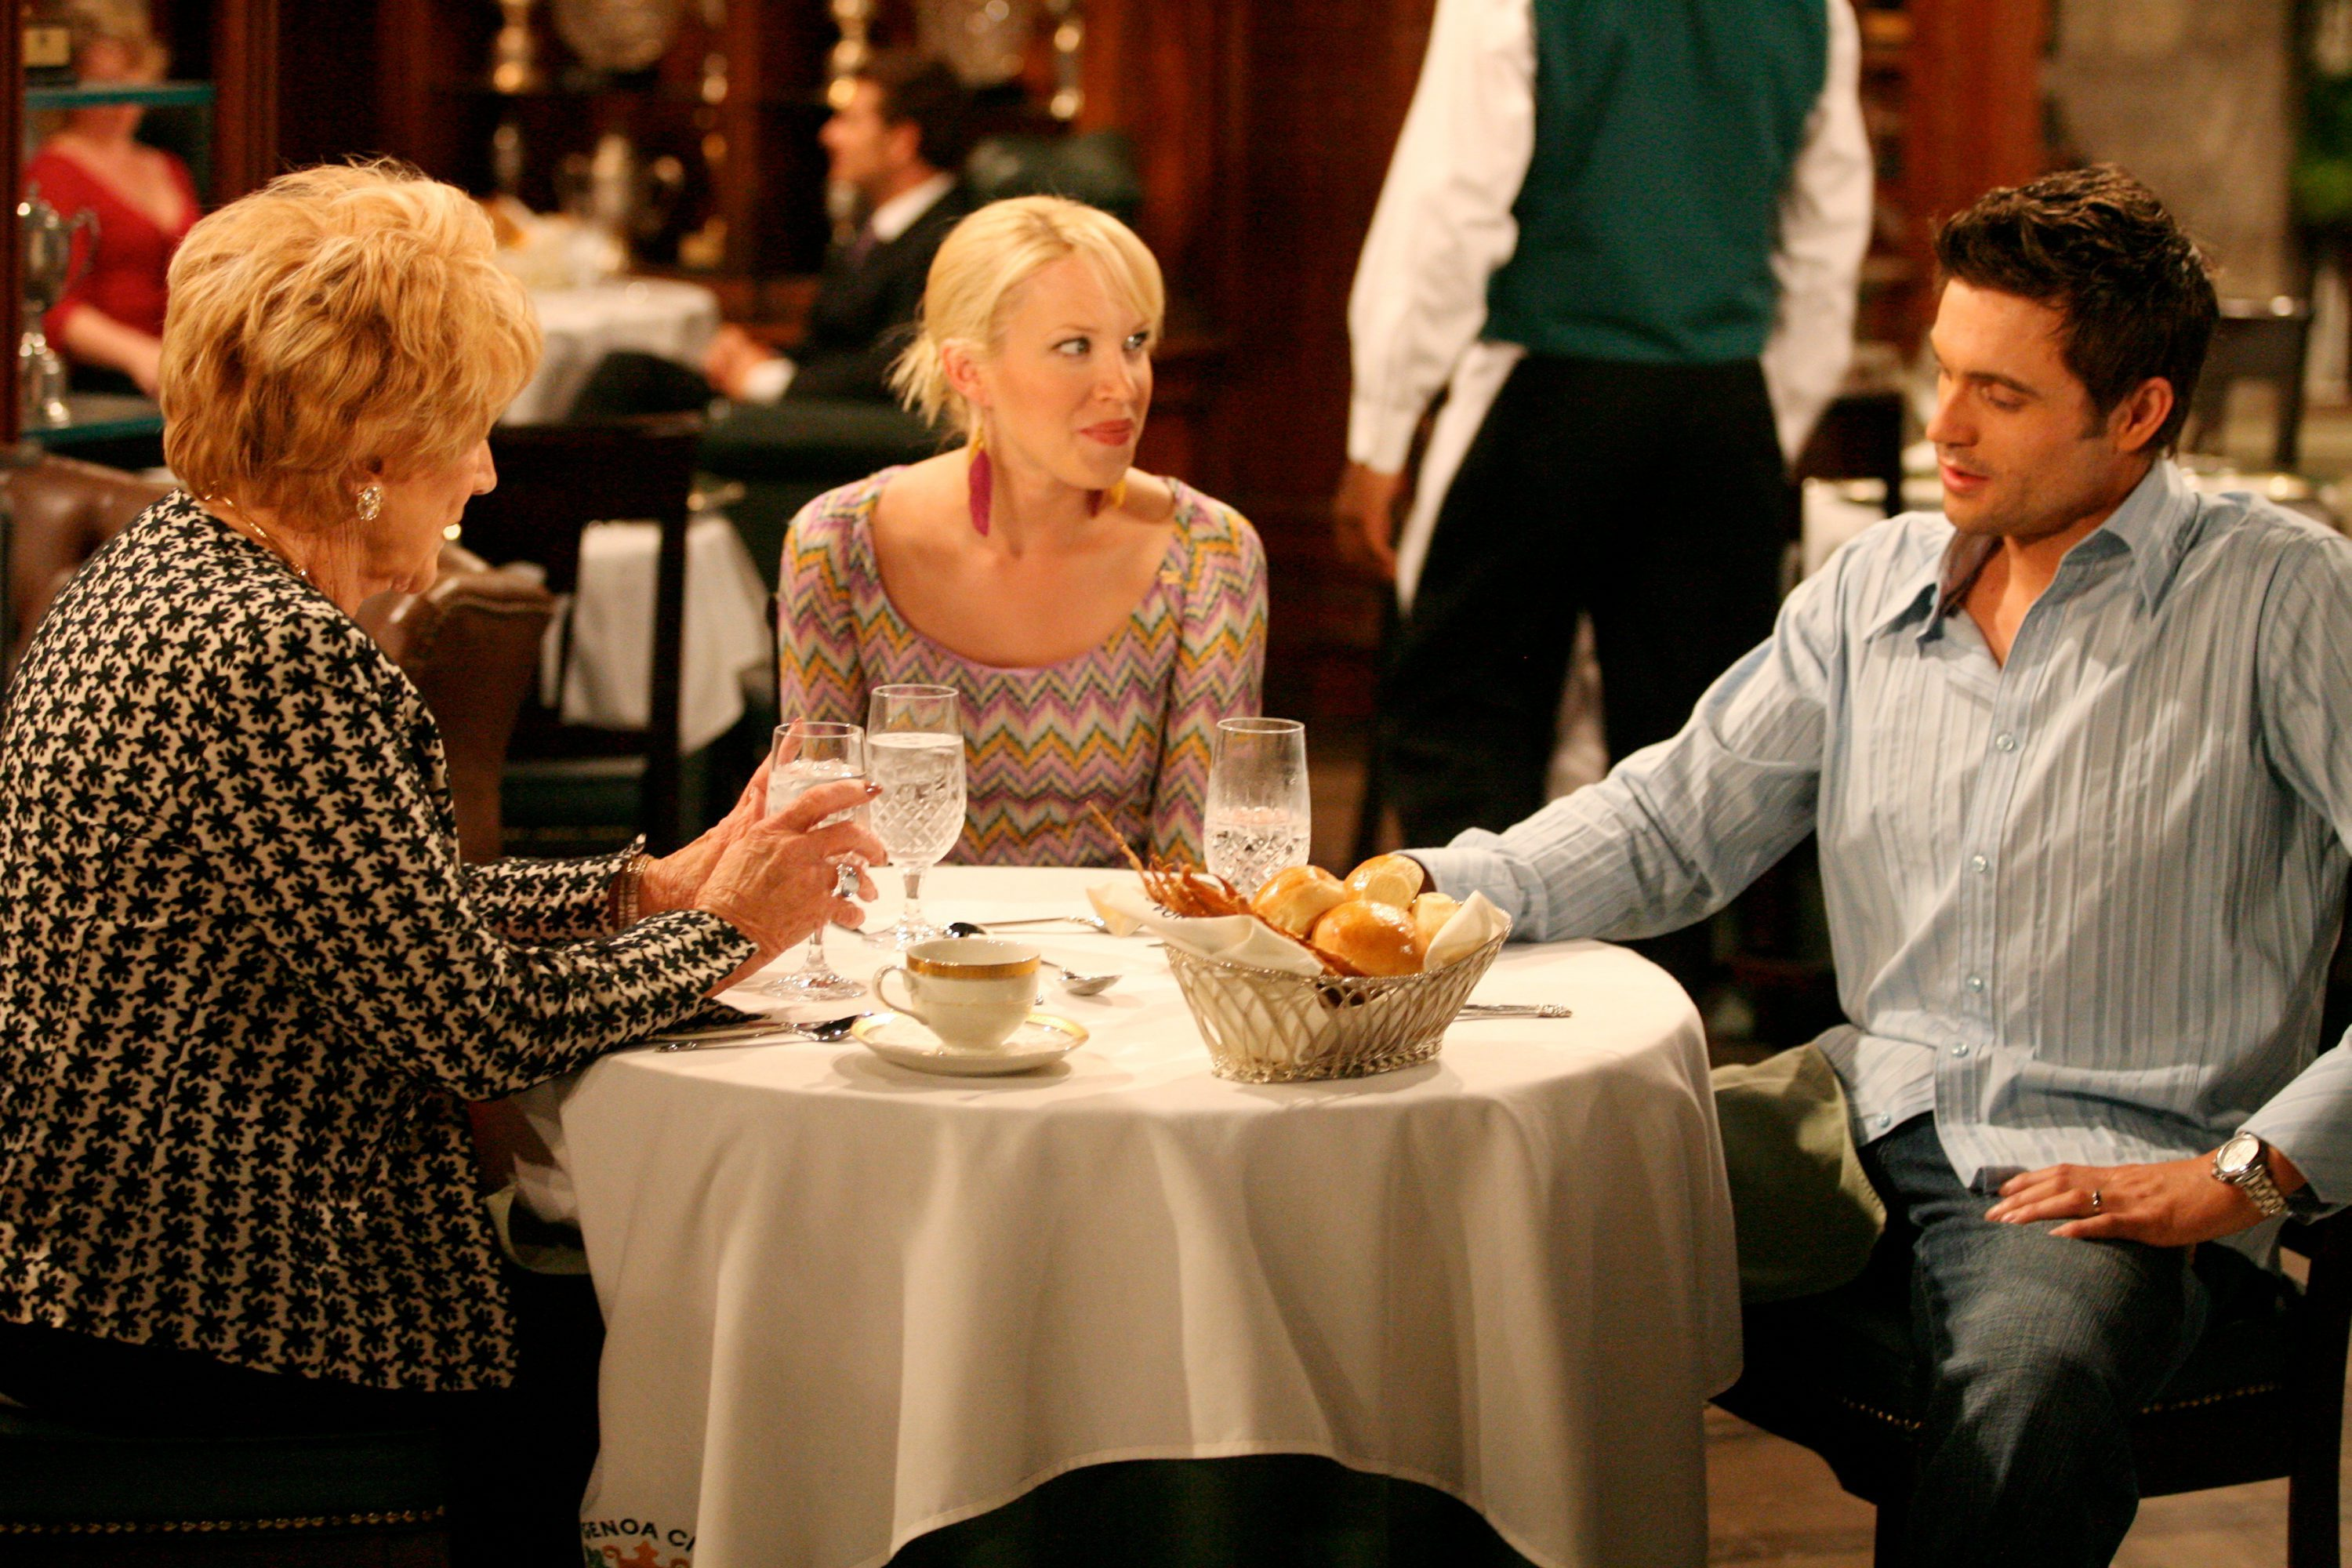 "Jeanne Cooper, Adrienne Frantz, Daniel Goddard""The Young and the Restless"" SetCBS Television CityLos Angeles3/14/07©Aaron Montgomery/jpistudios.com310-657-9661Episode #8624"